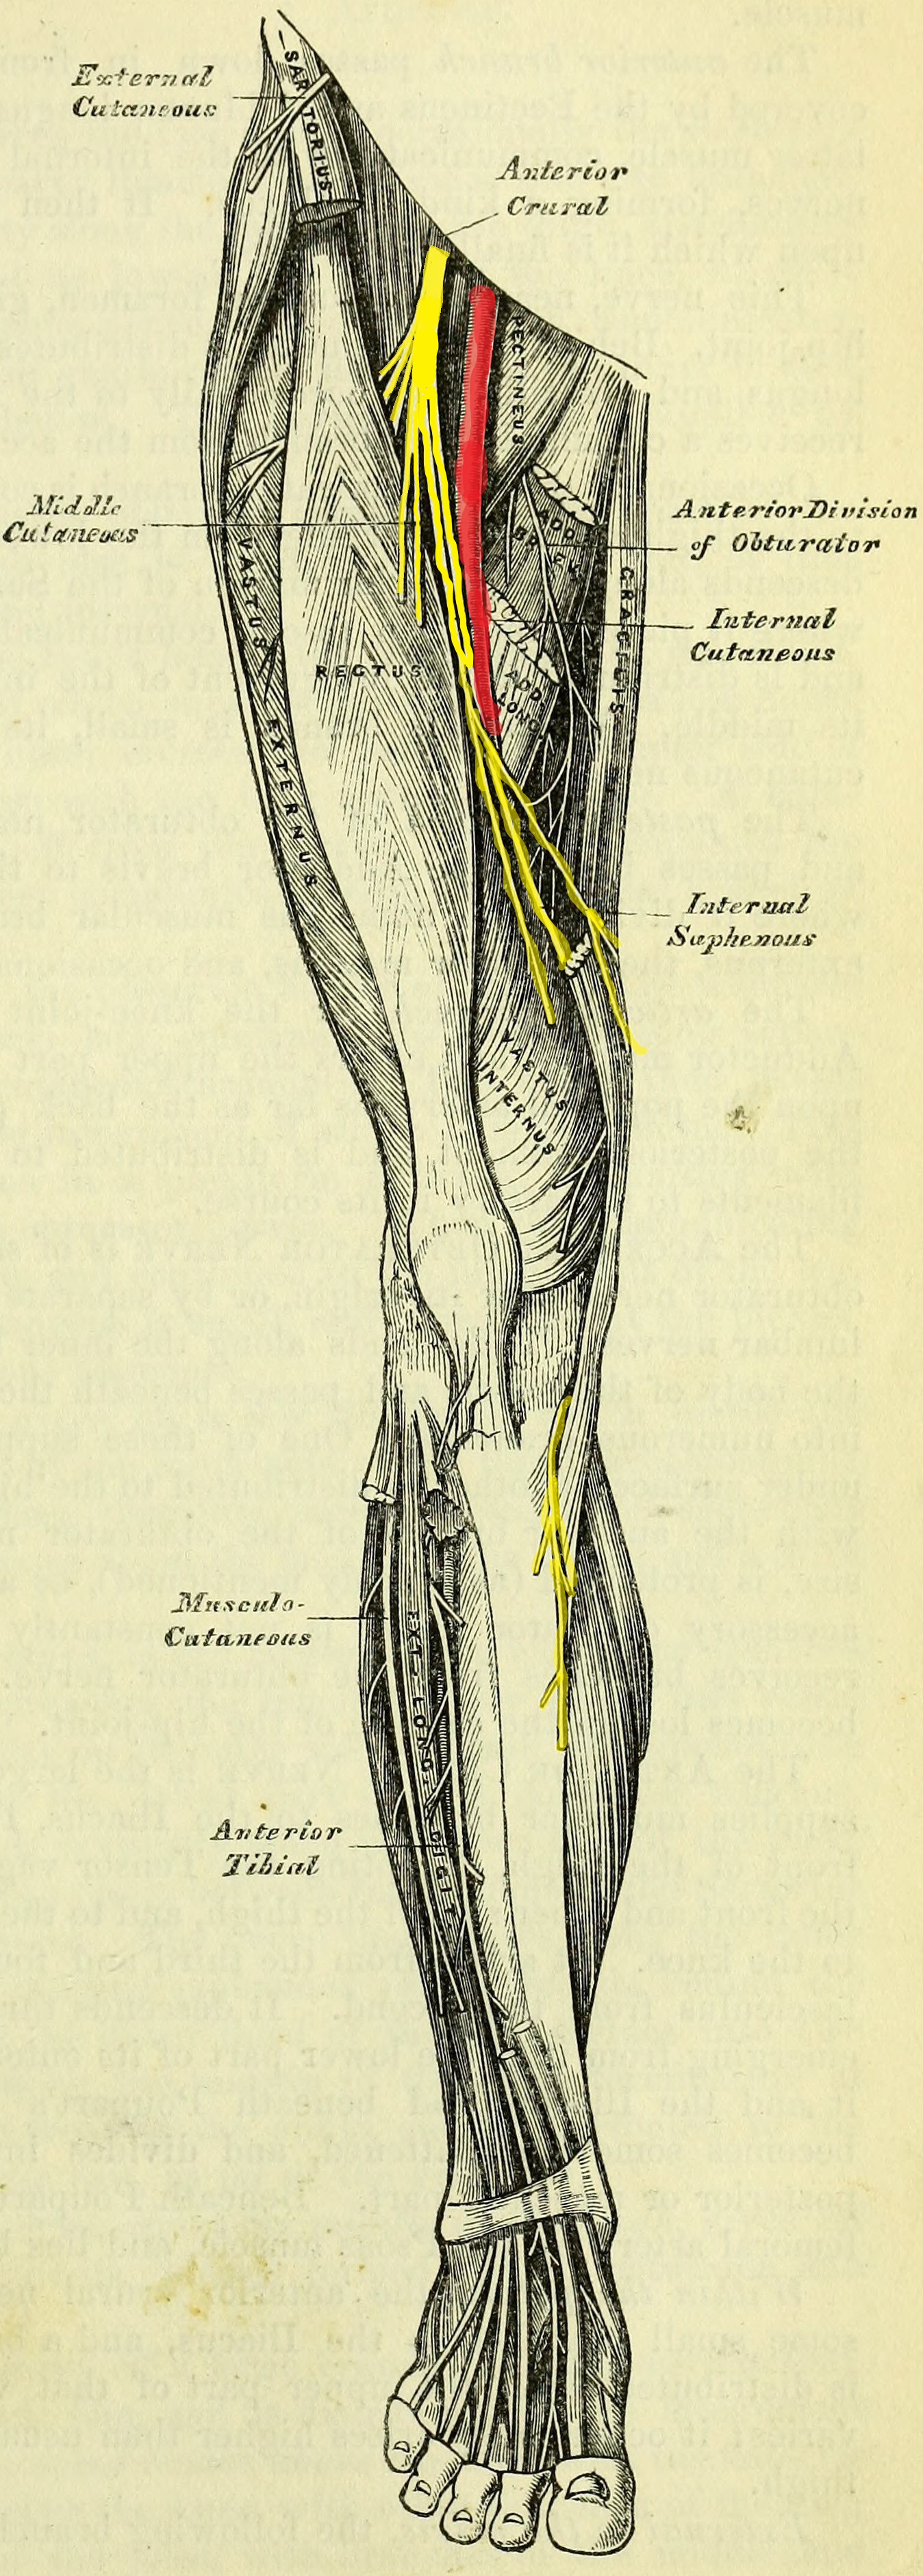 branches of the femoral nerve and distribution